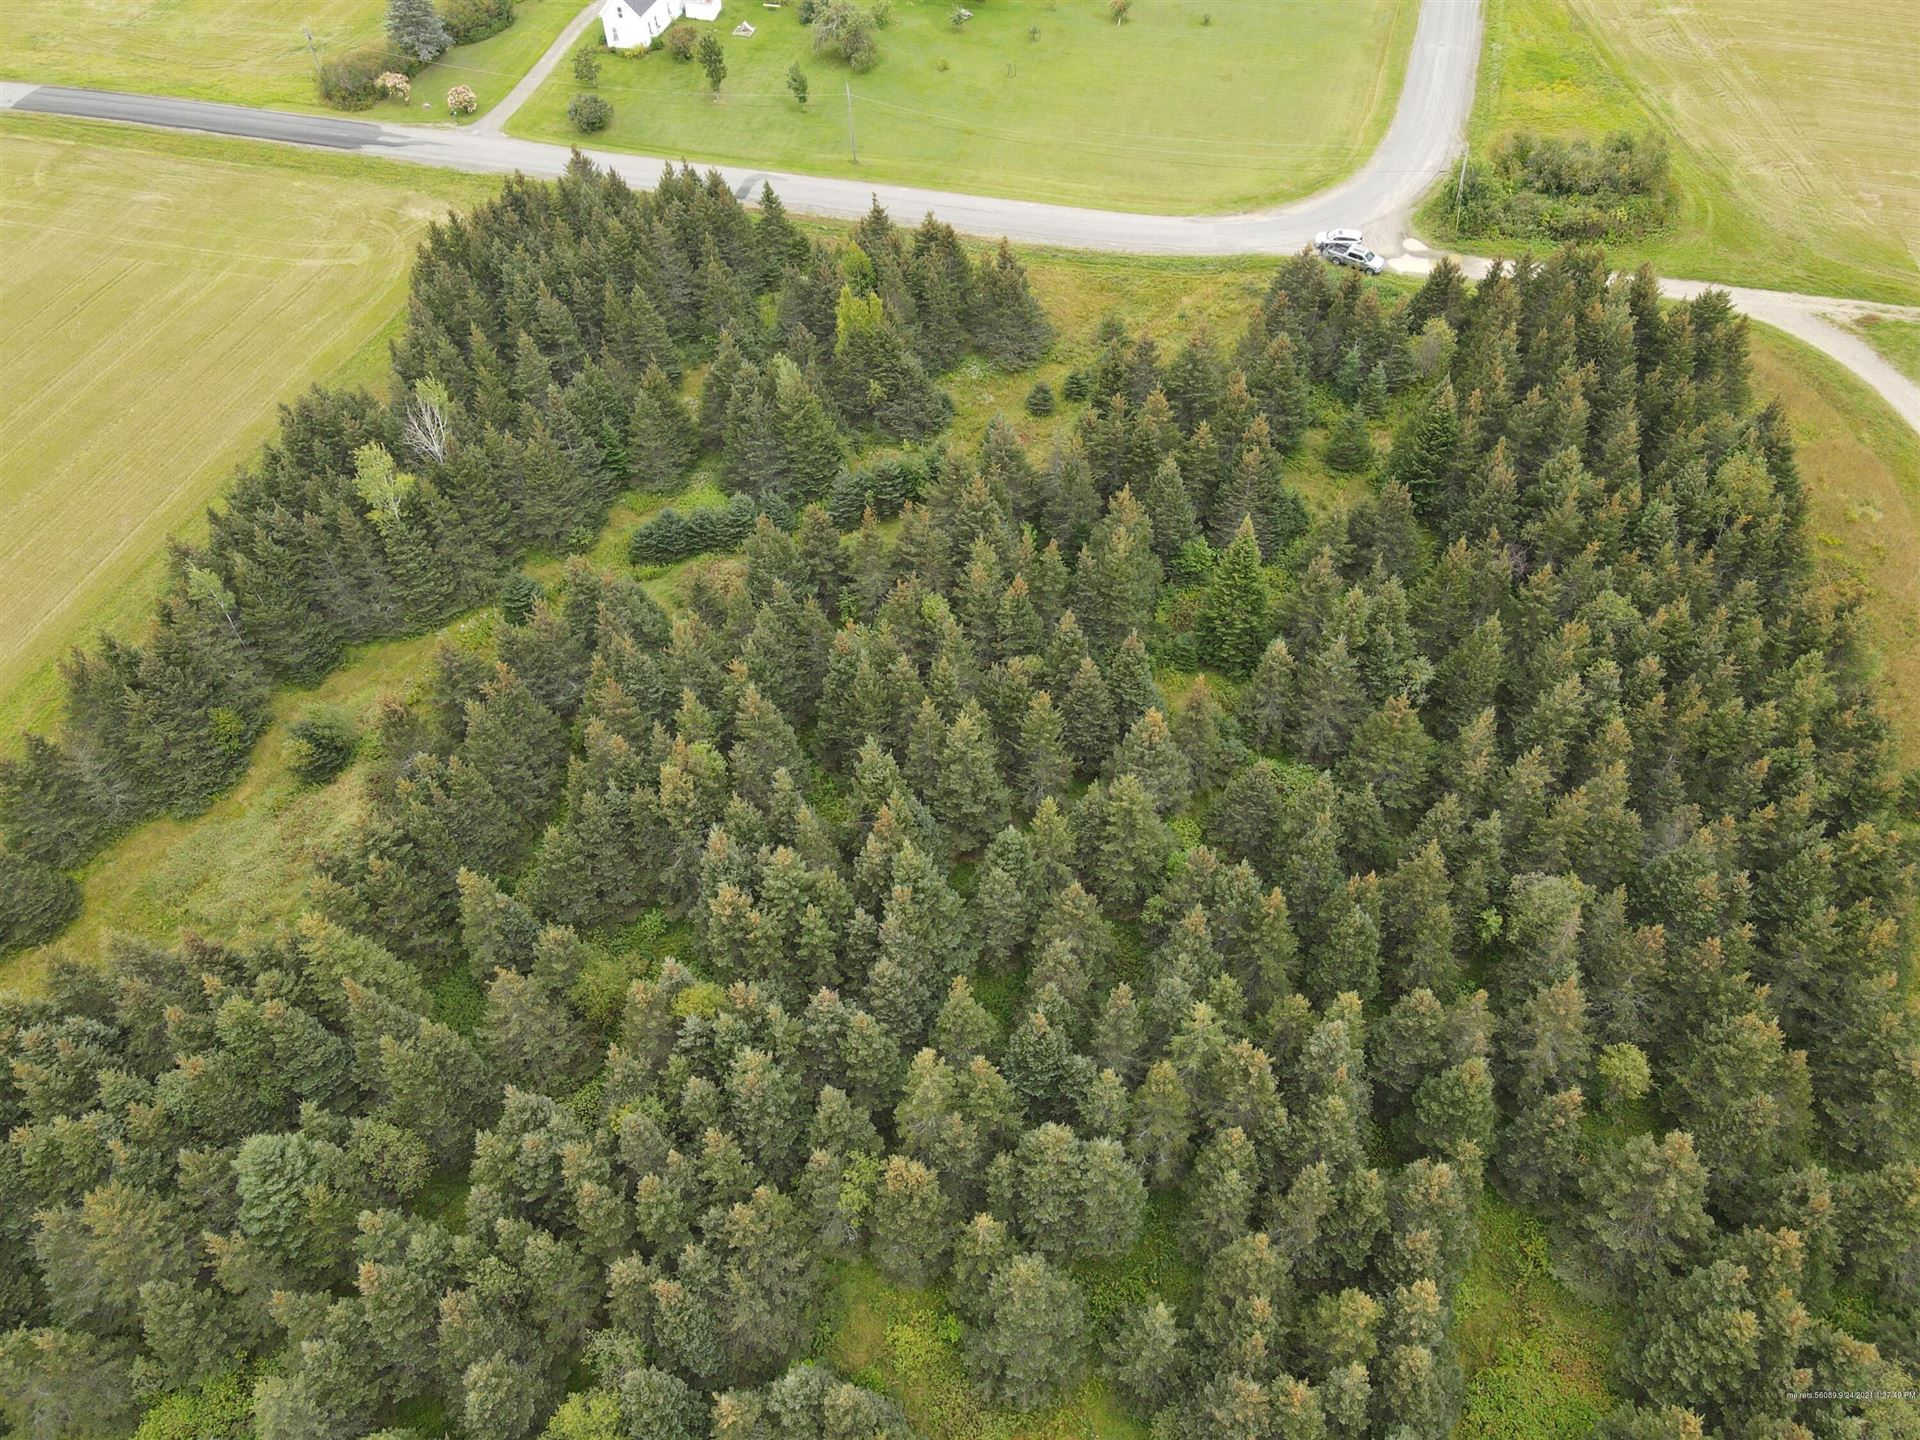 Photo of Lot 17-C Bailey Road, Caribou, ME 04736 (MLS # 1509553)